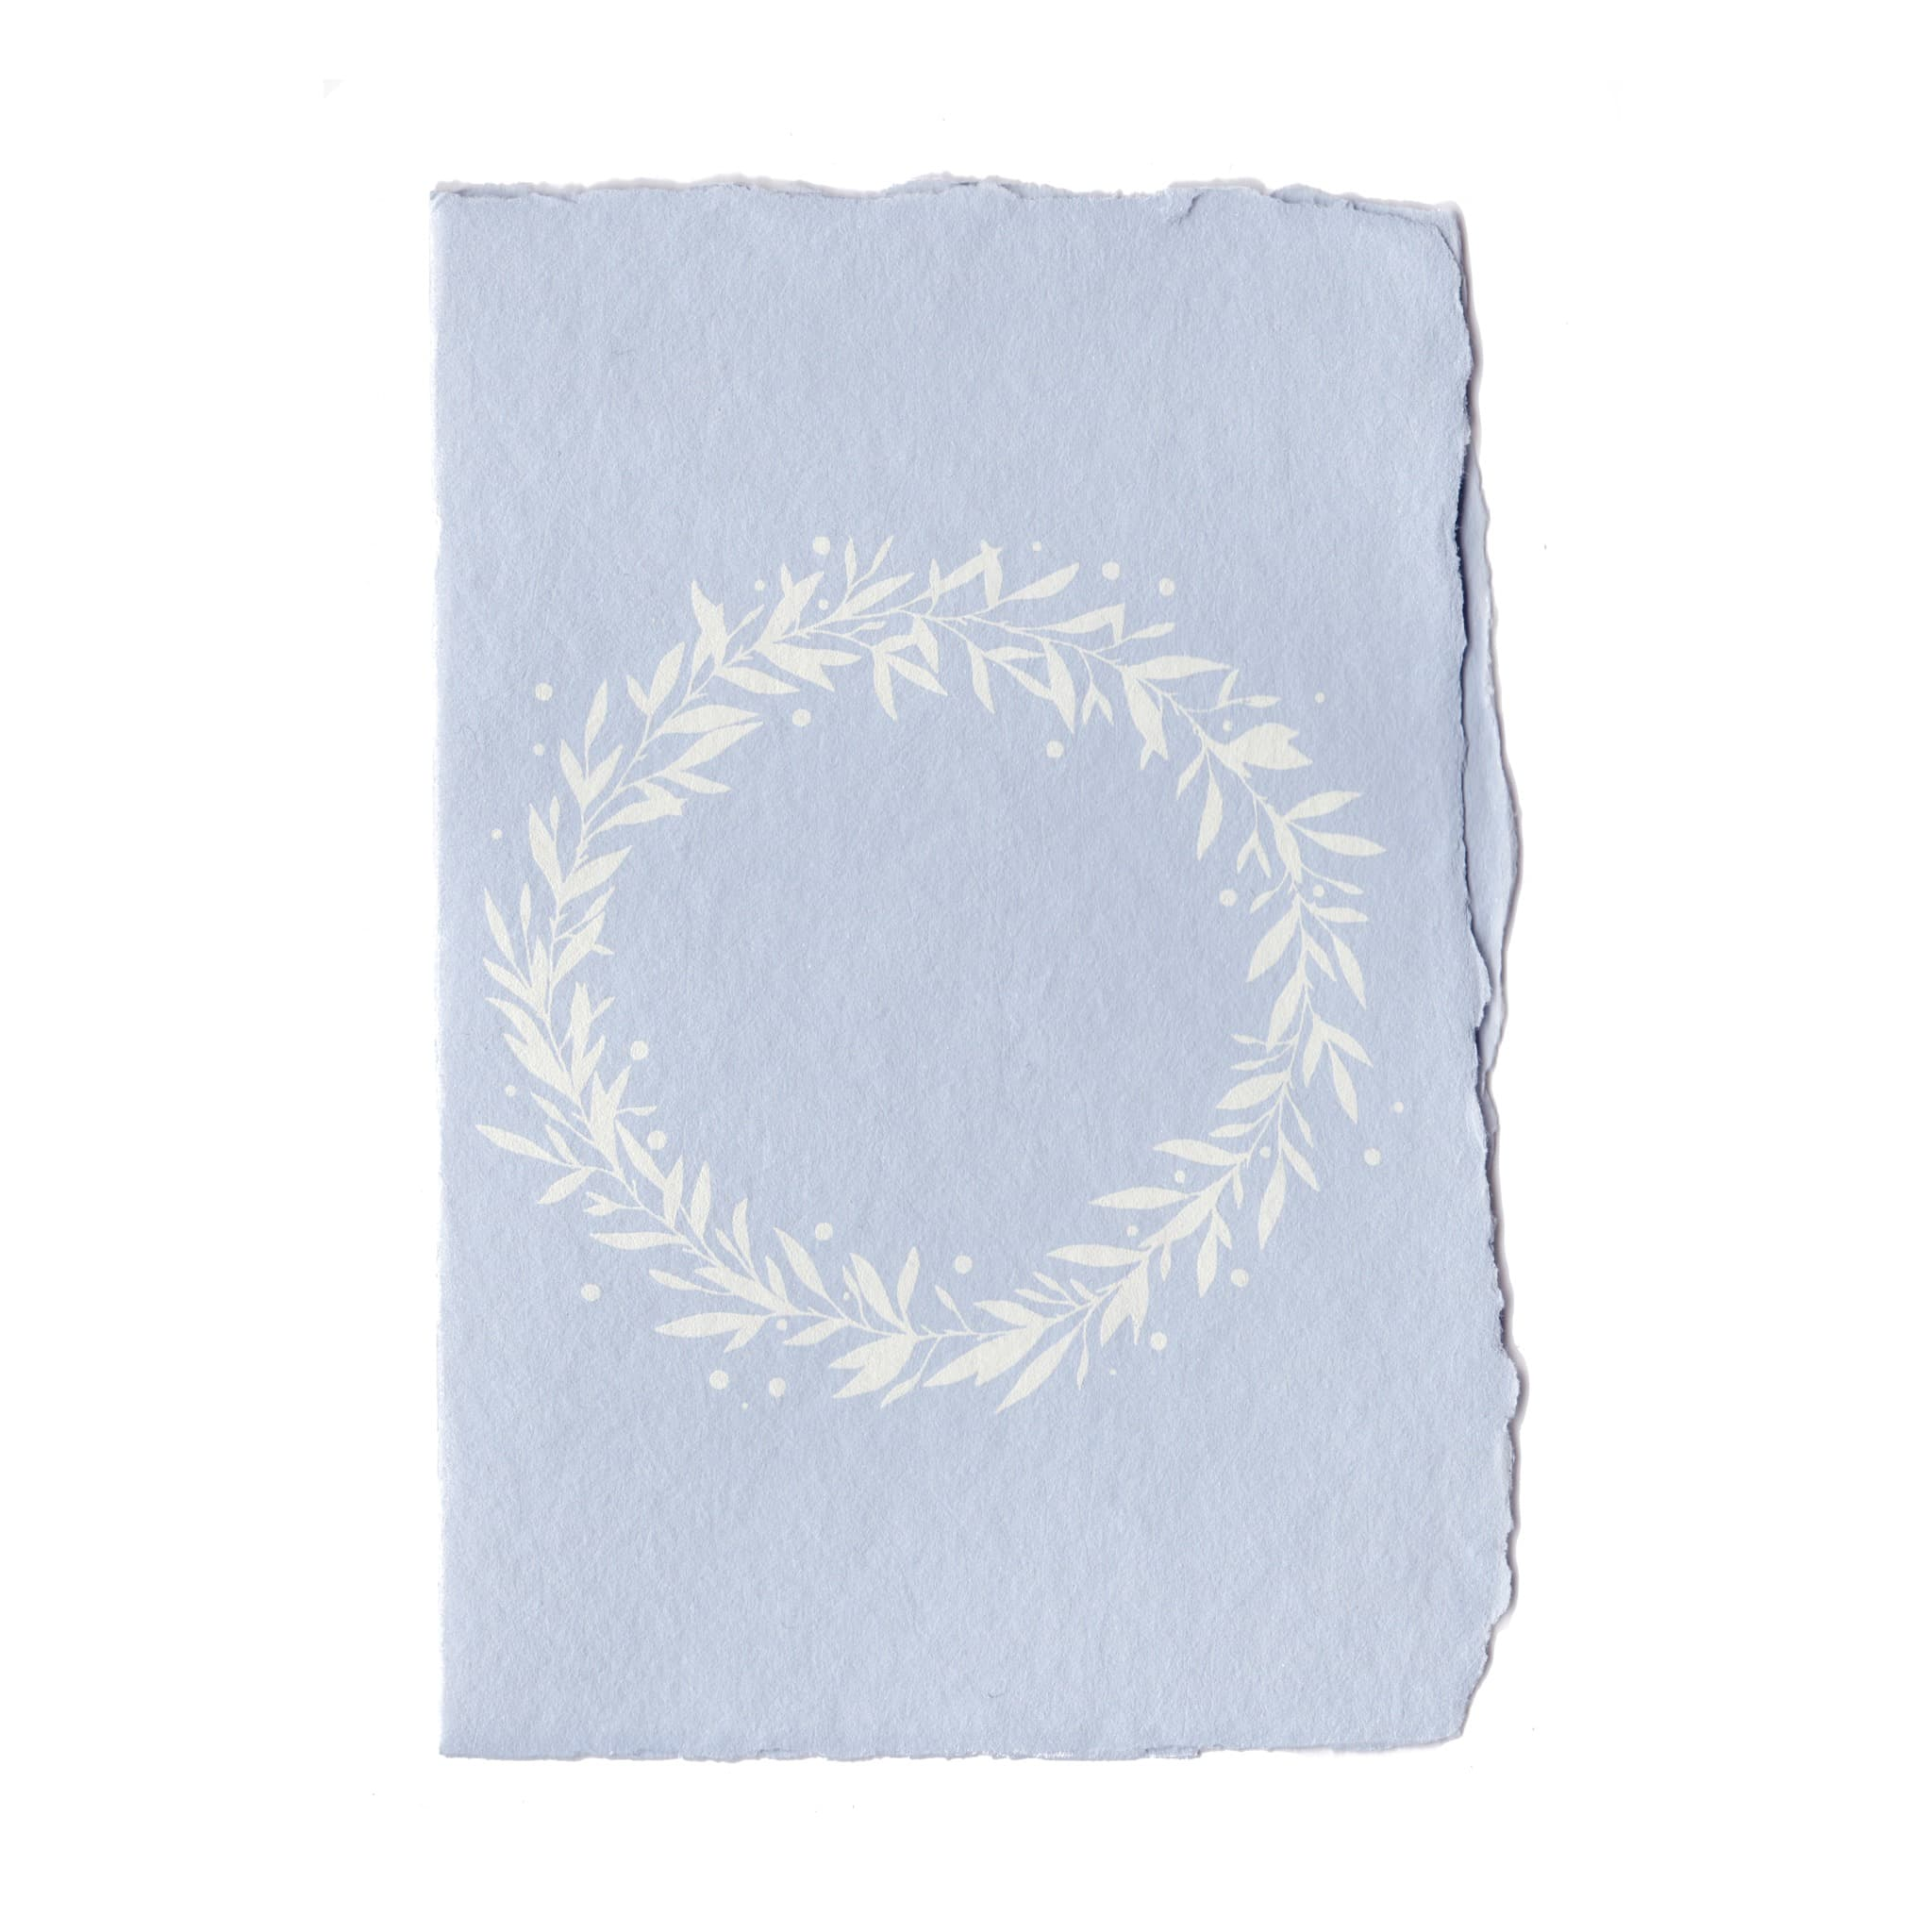 Eucalyptus Wreath Card